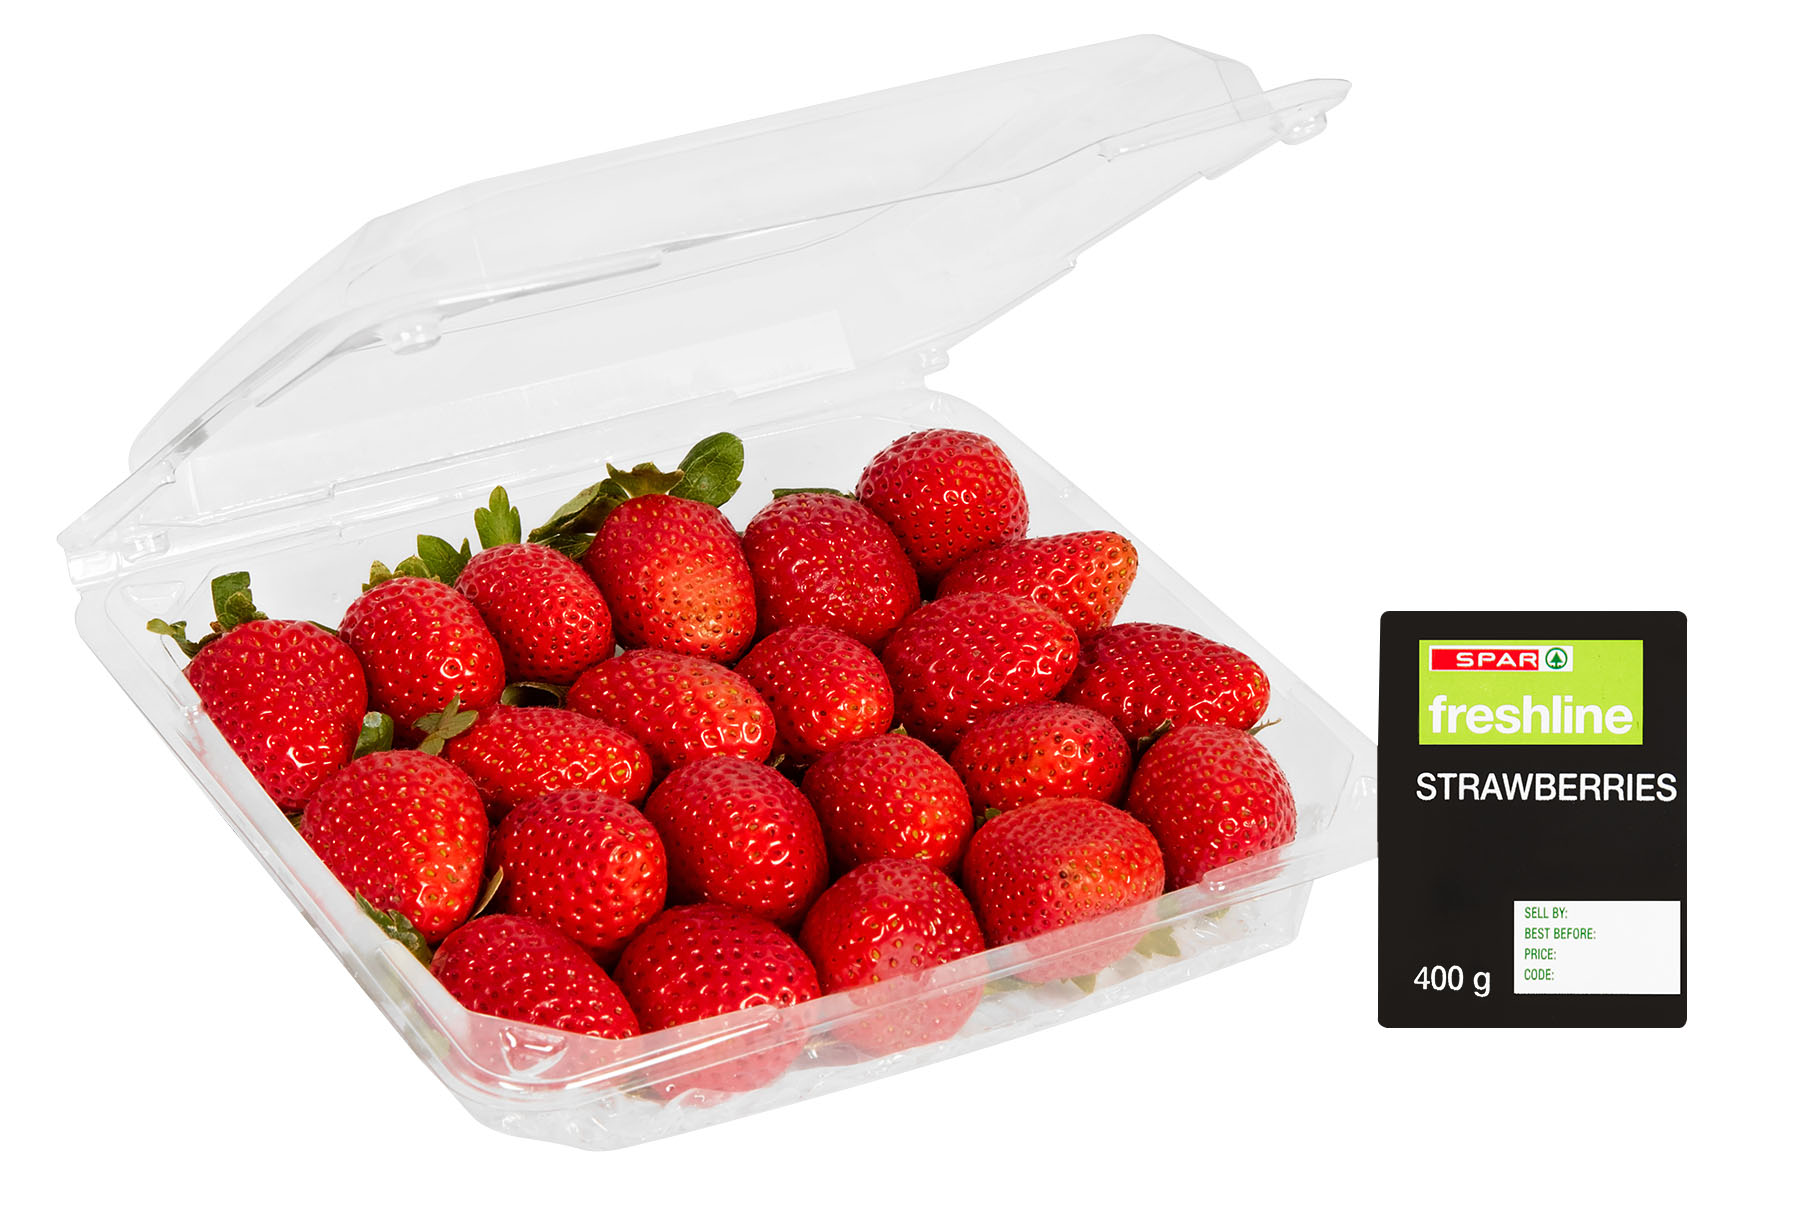 freshline strawberries